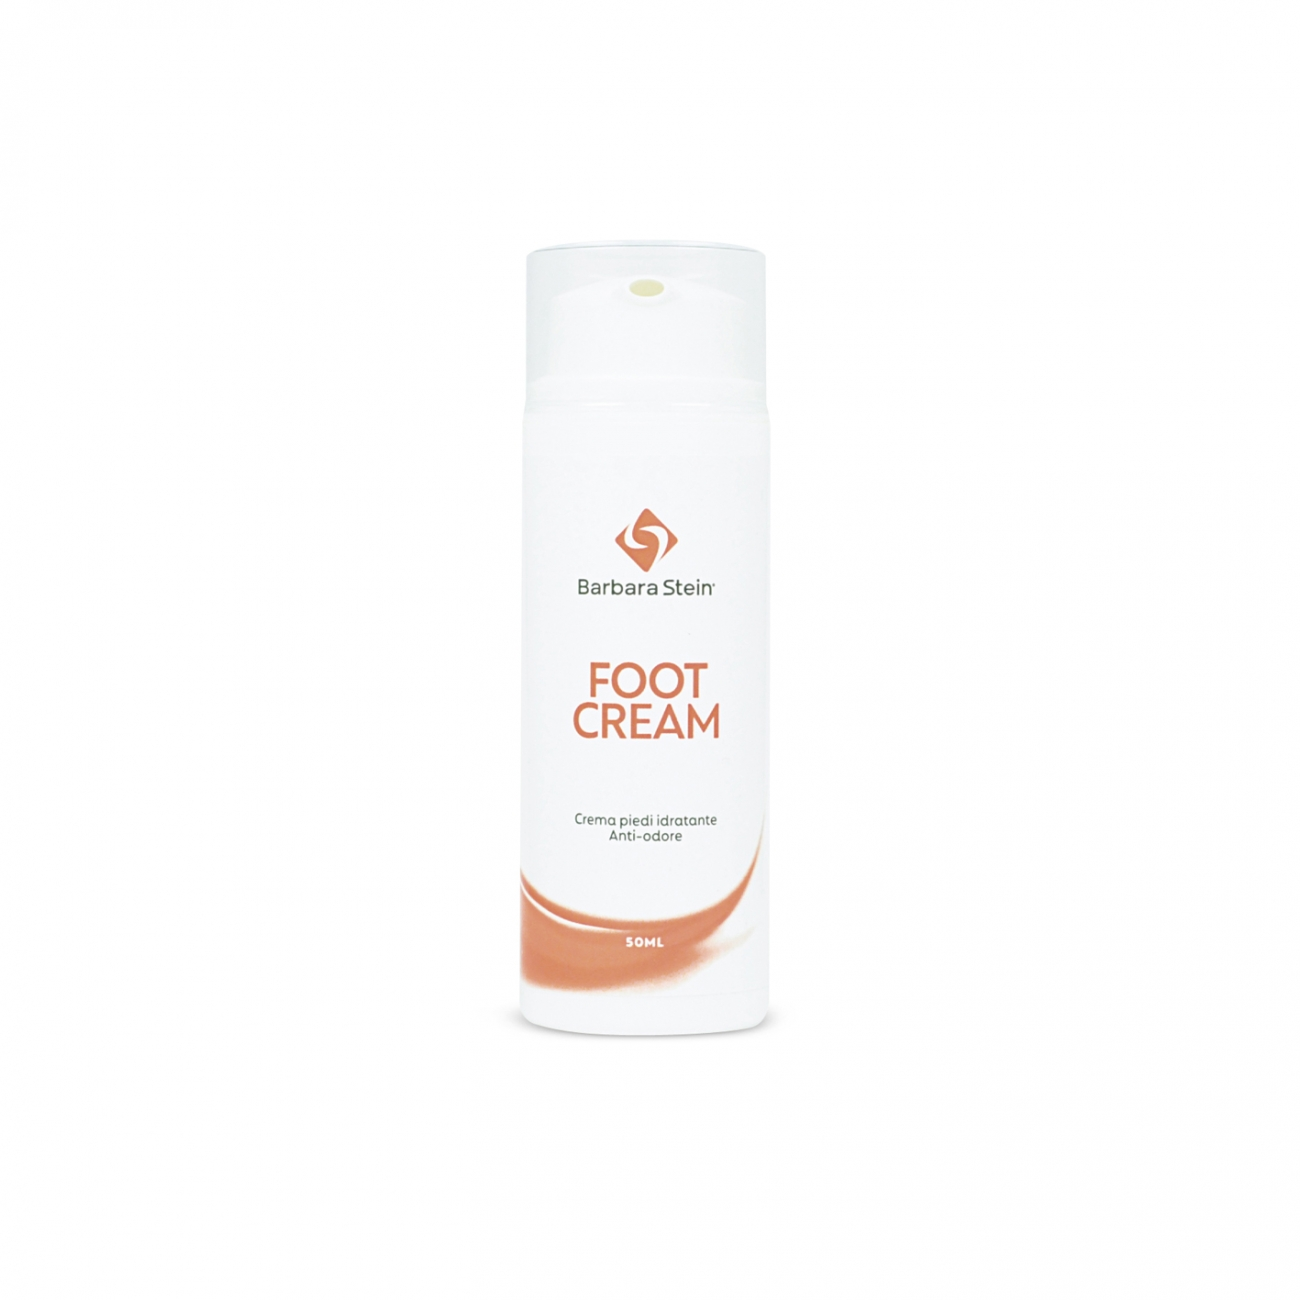 FOOT CREAM (50 ml)